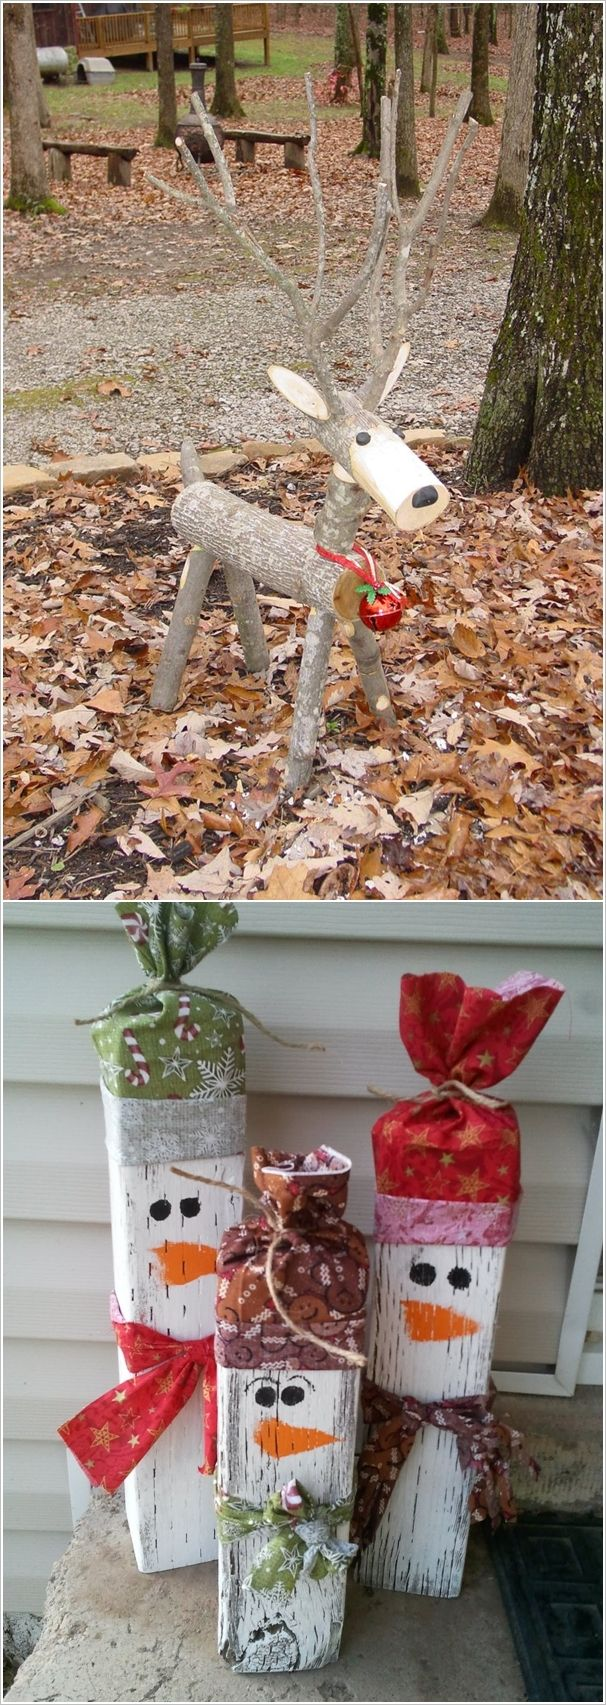 Wooden log reindeer plans woodworking projects